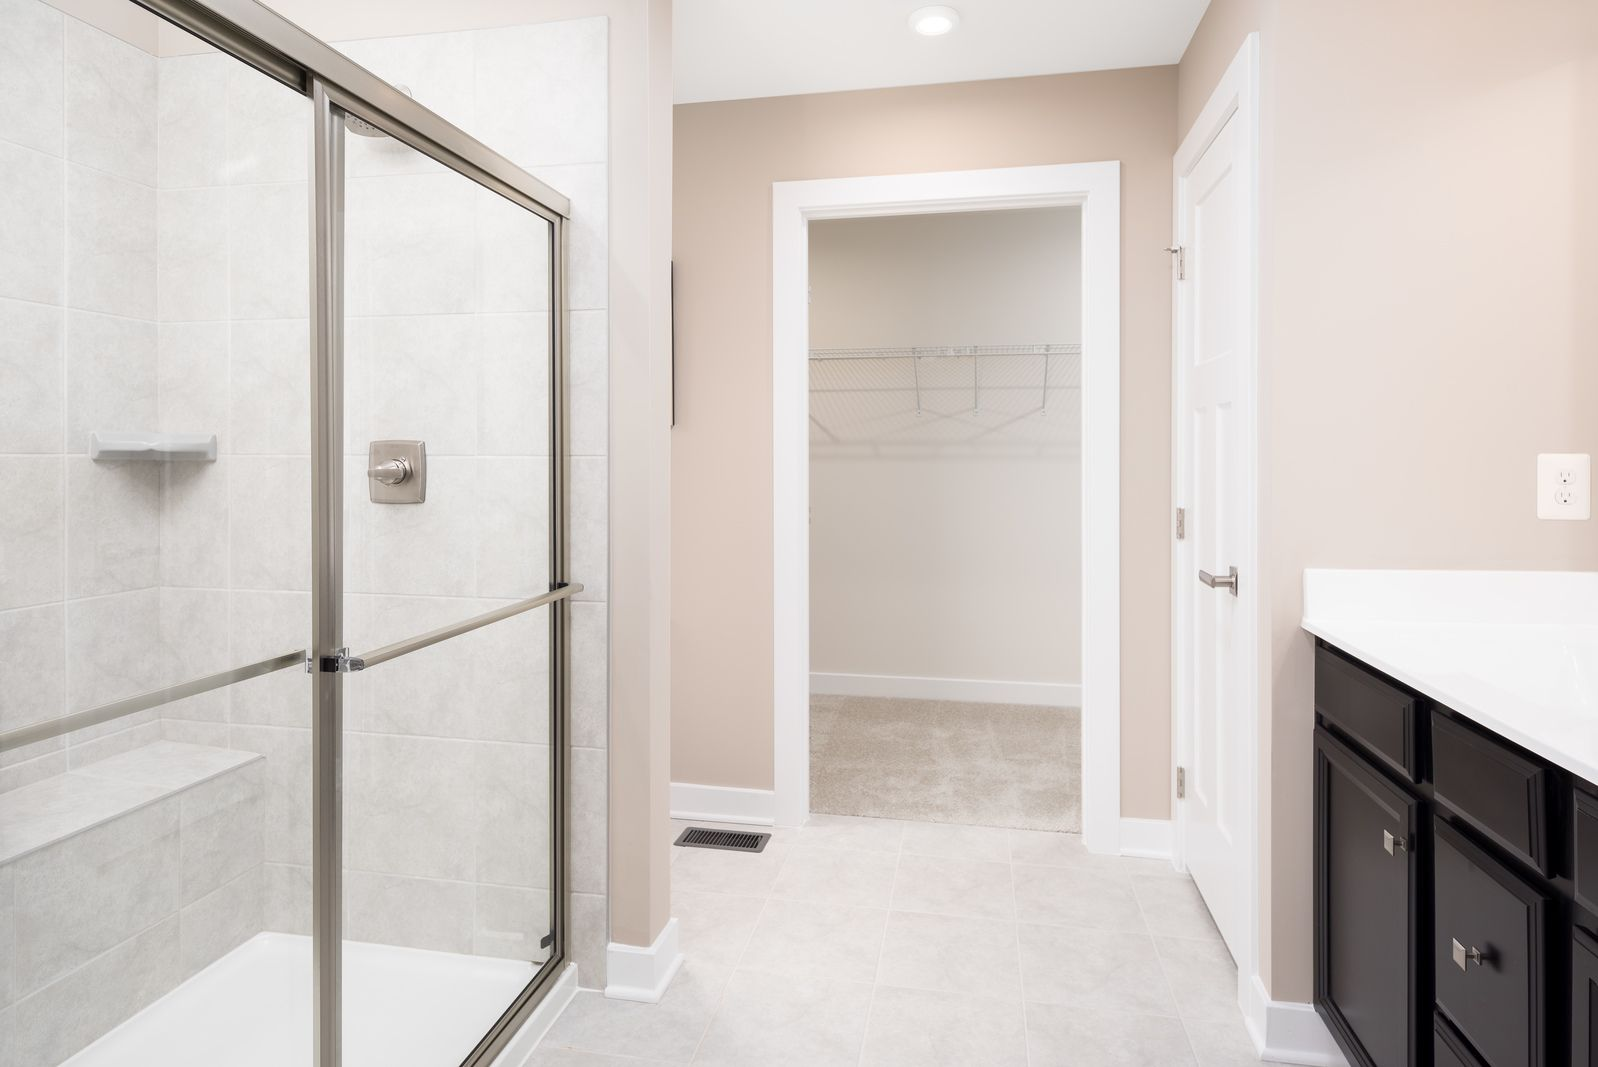 Bathroom featured in the Eden Cay By Ryan Homes in Cleveland, OH